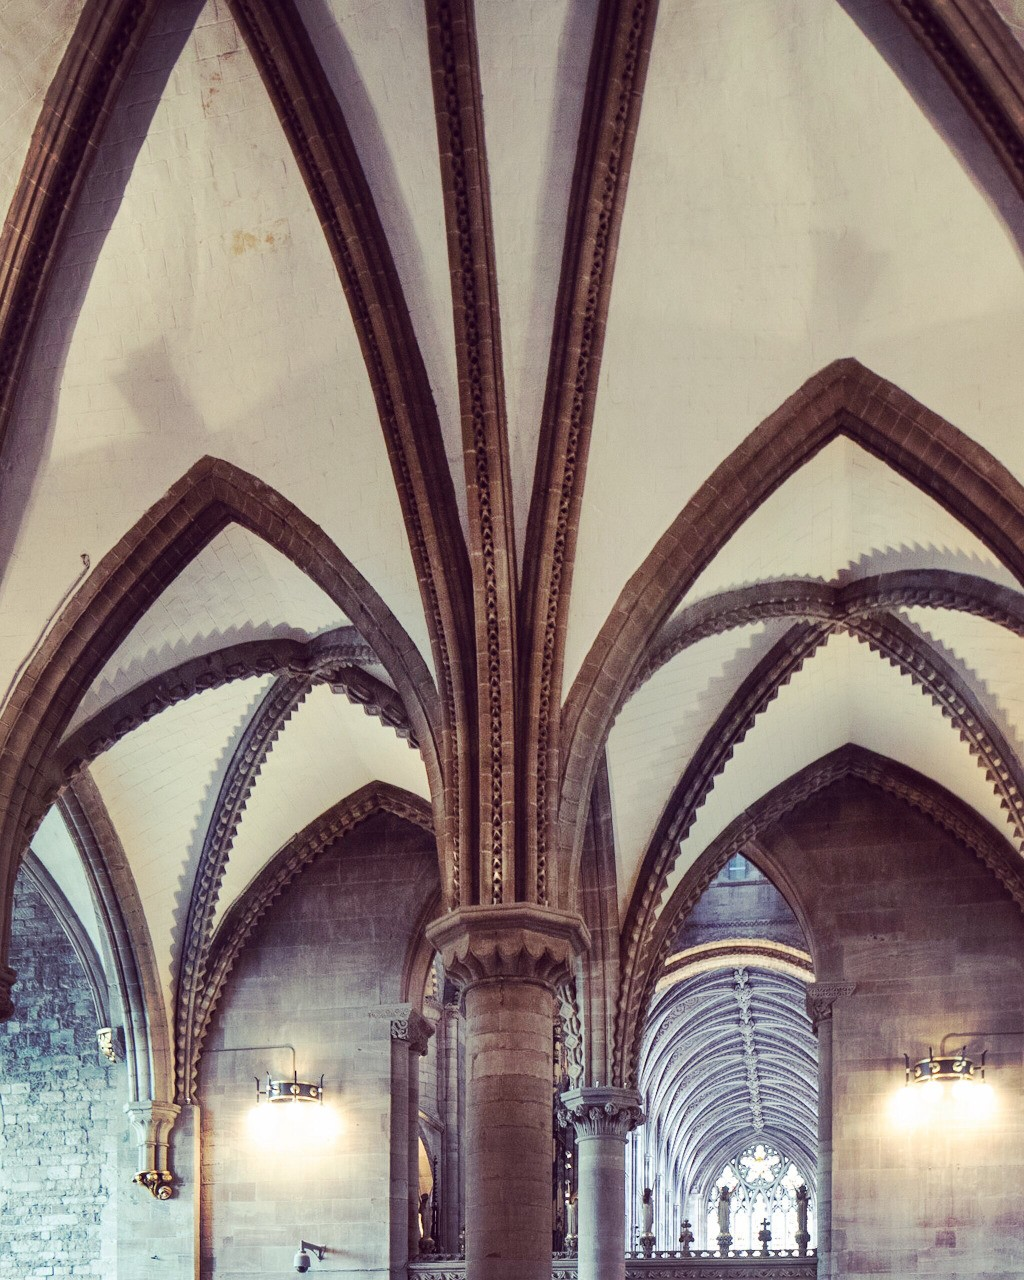 Vaulting ambition at Hereford Cathedral UK - follow me on Insta: @fotofacade